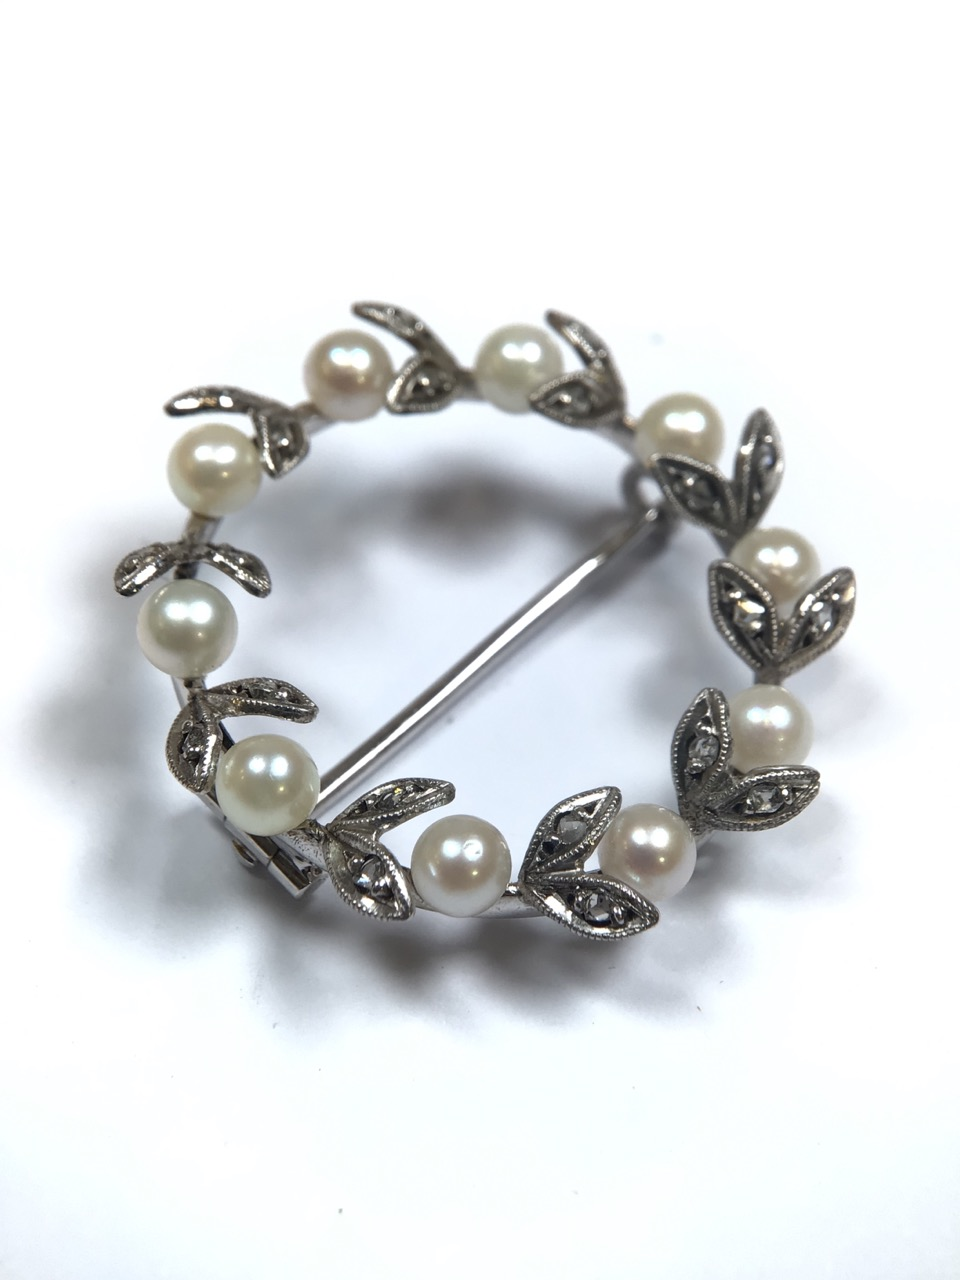 An unmarked precious white metal Belle Époque wreath brooch set with a surround of pearls and